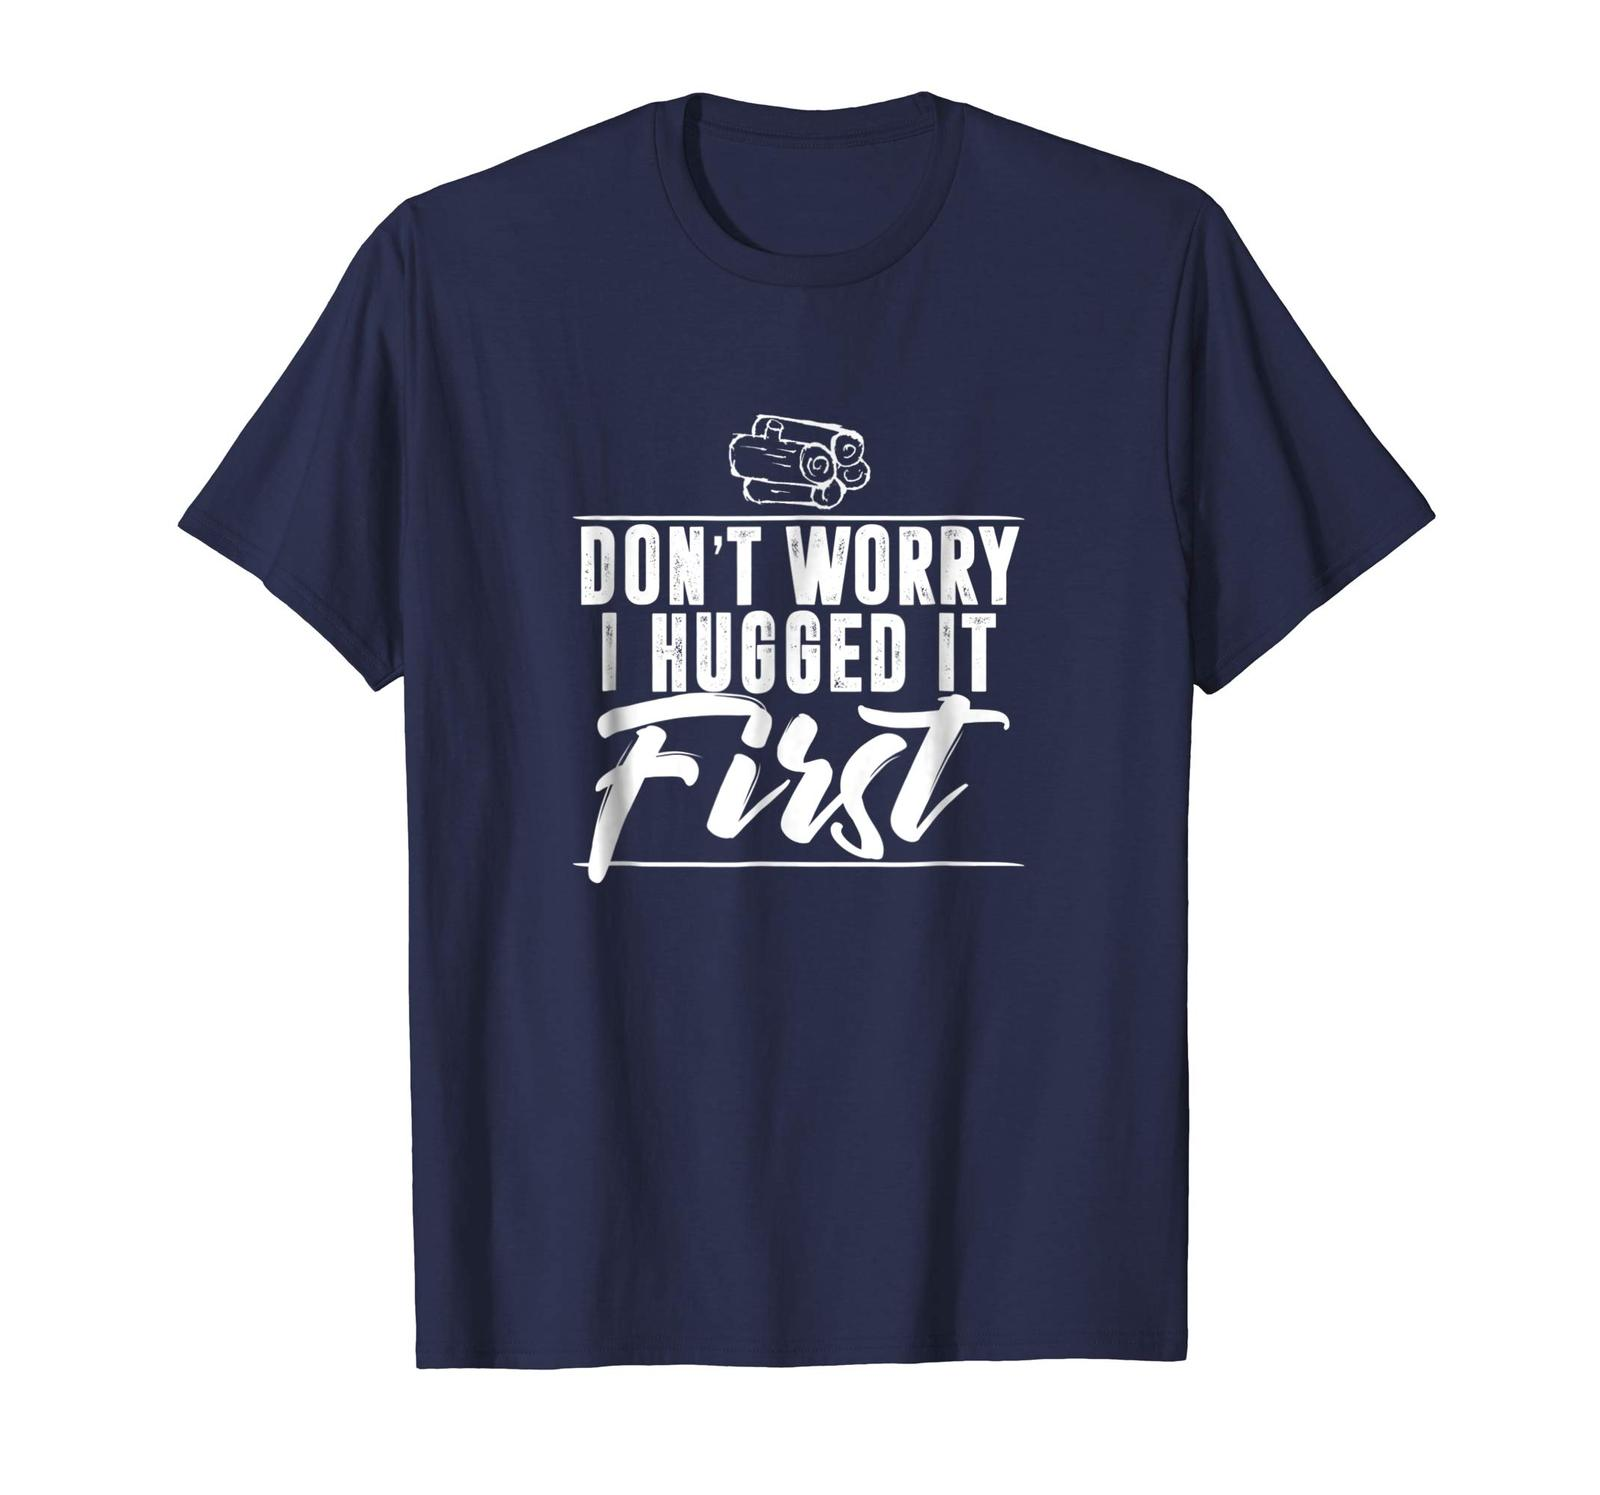 Primary image for Brother Shirts - Don't Worry I Hugged It First Anti Tree Hugger Wood T-Shirt Men